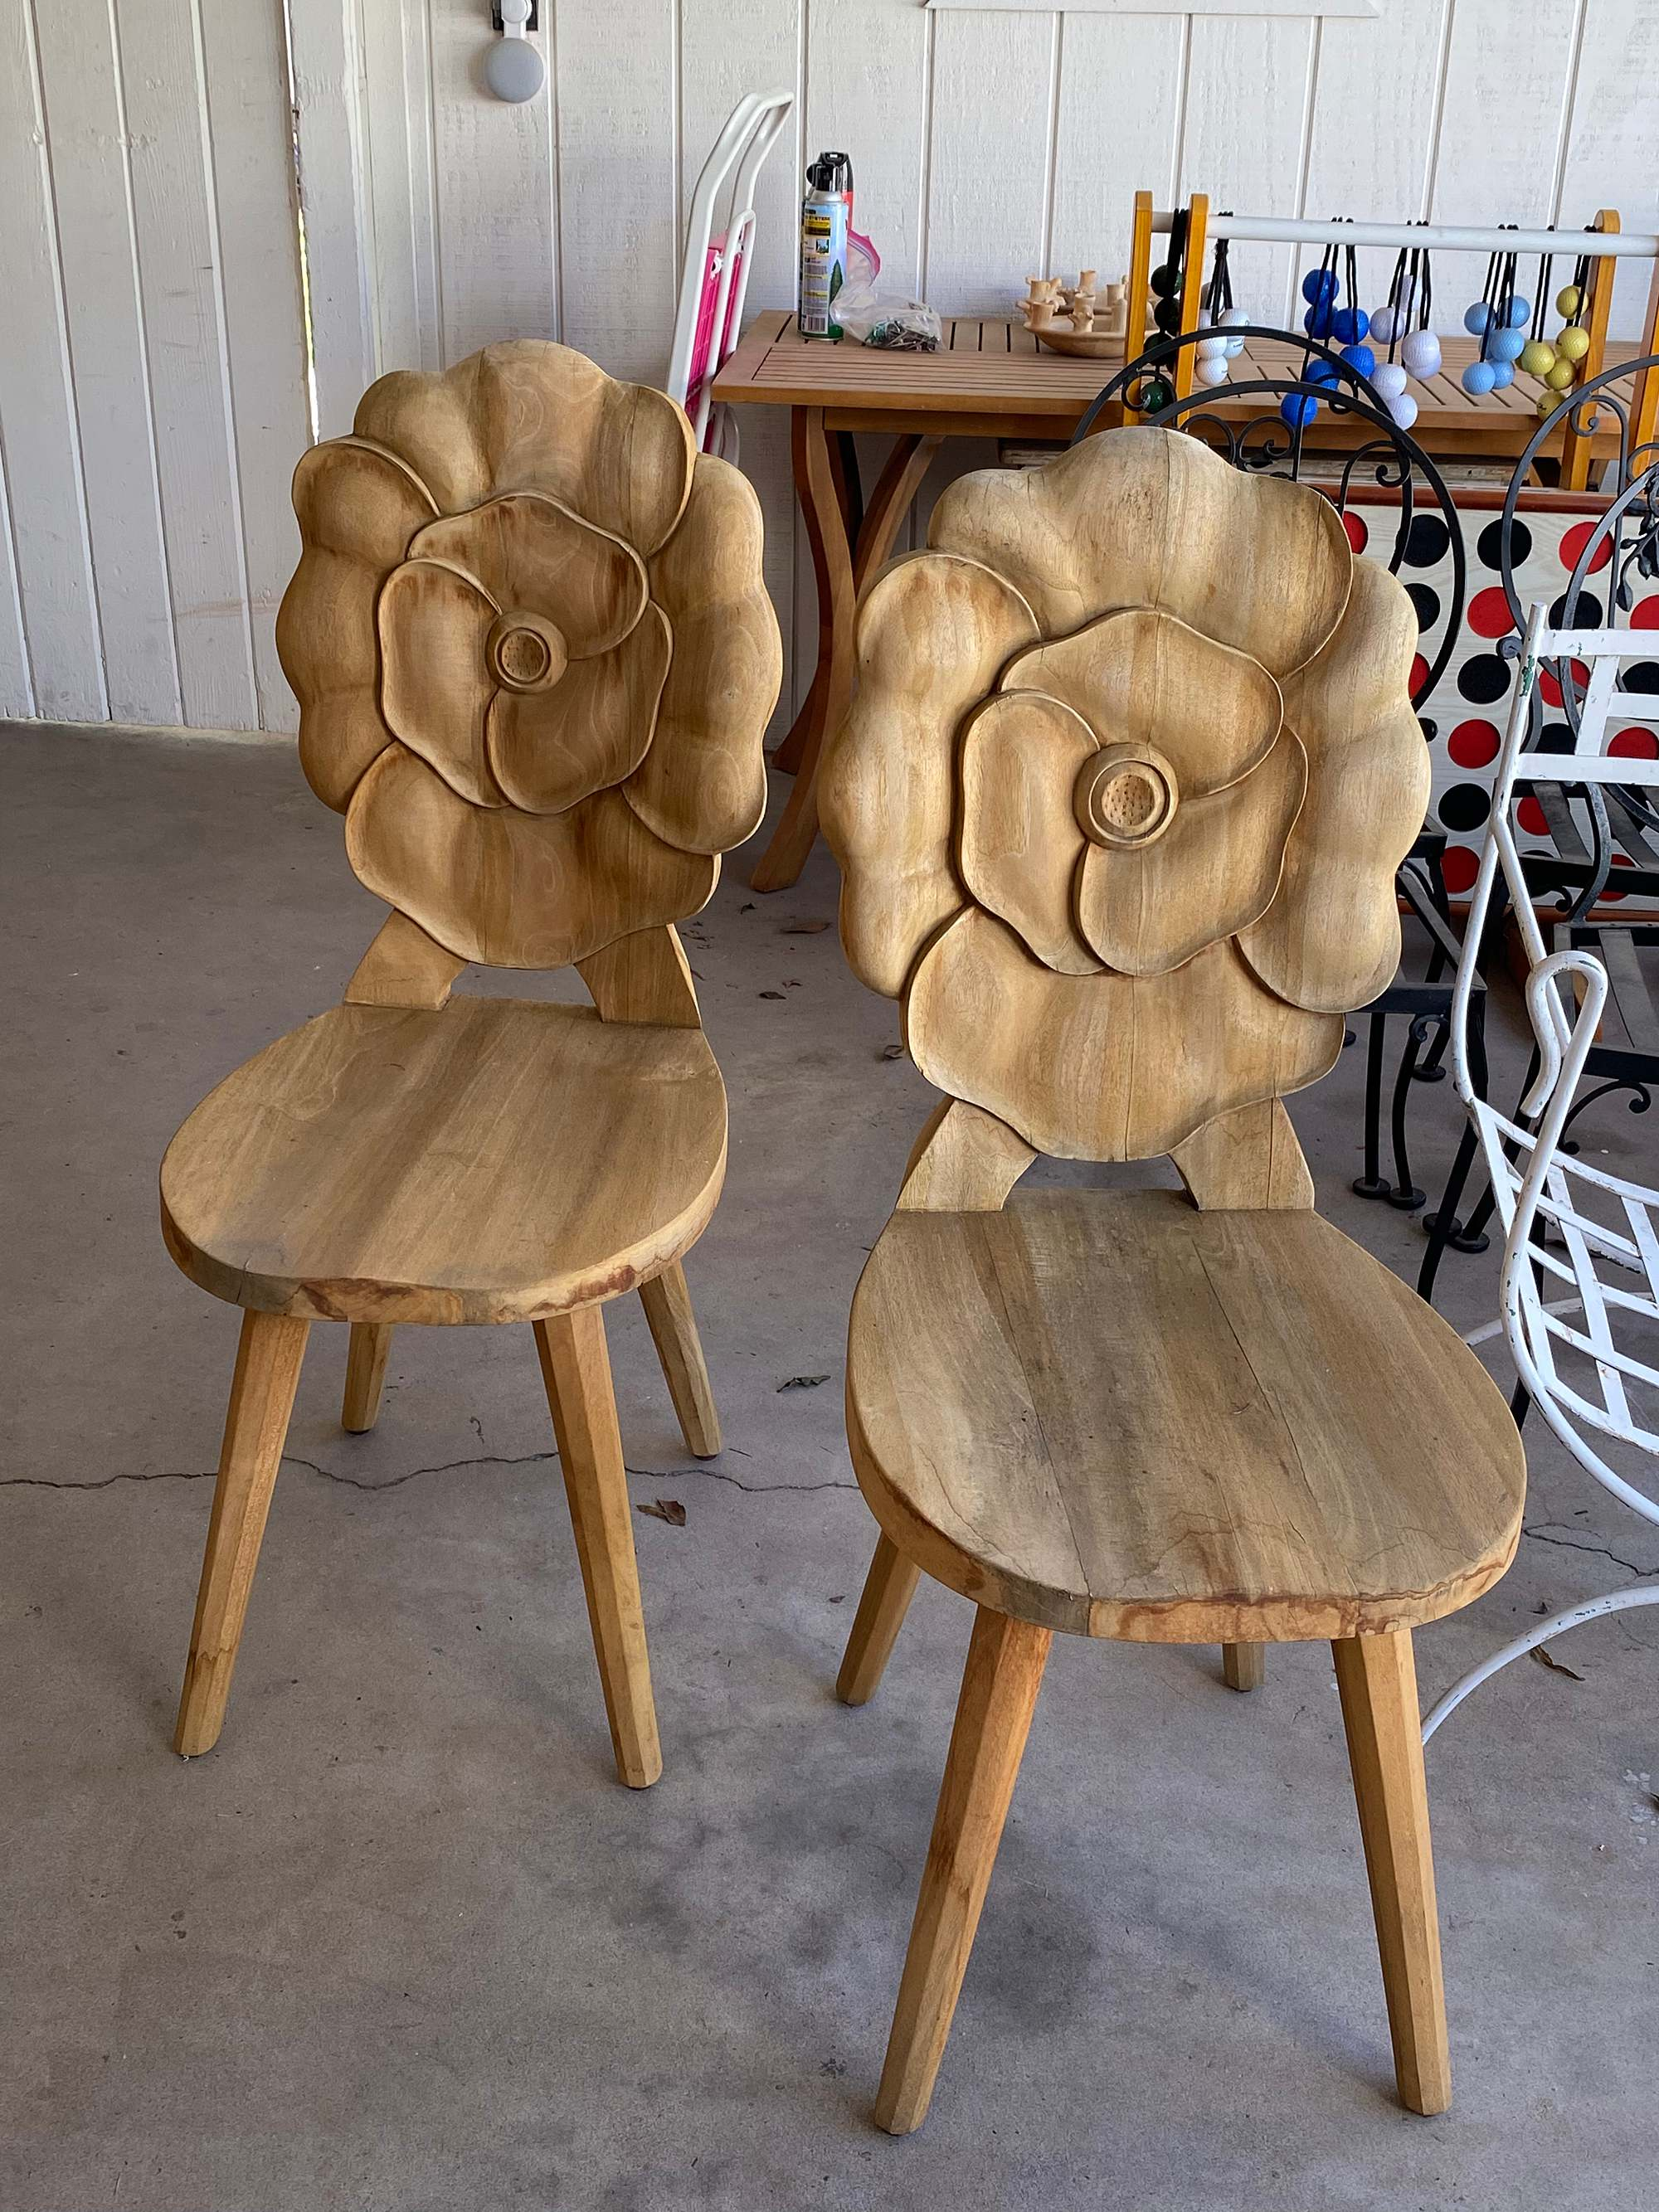 floral teakwood chairs for the garden